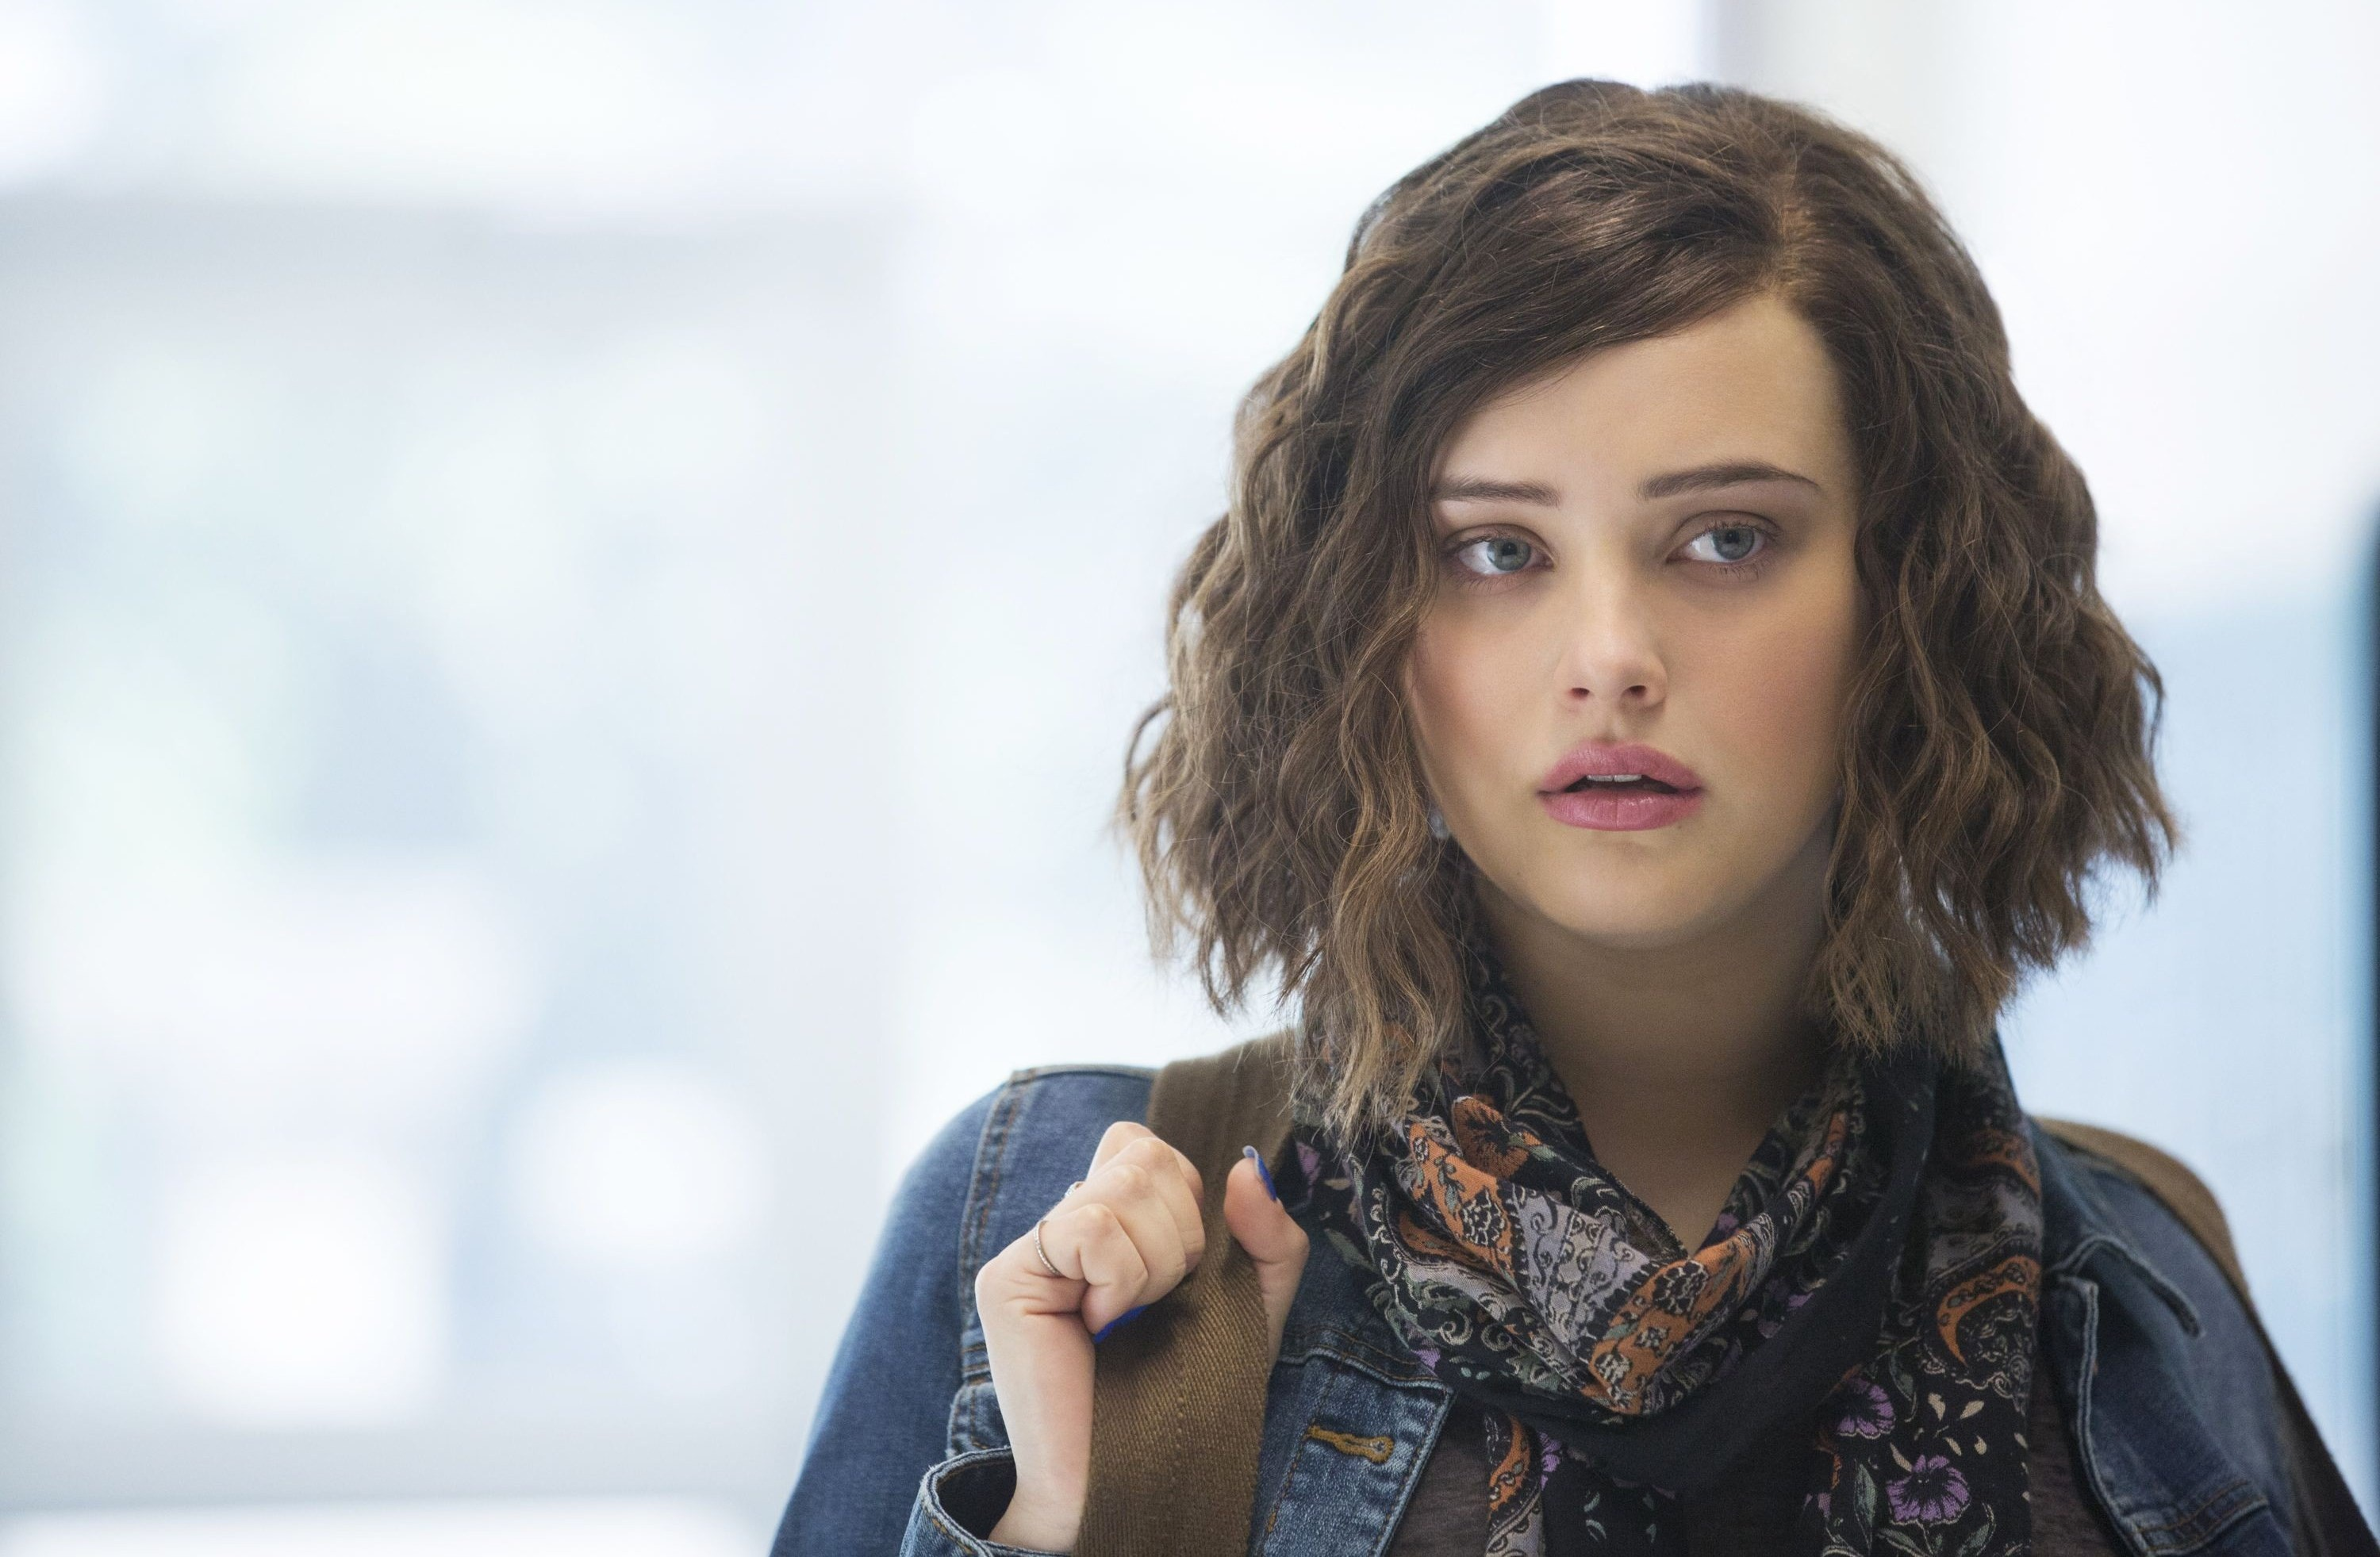 thirteen reasons why hannah baker My latest addiction  -thirteen reasons why by jay asher 13 reasons why - quote of hannah baker when no one bothered to save her so they could still be.